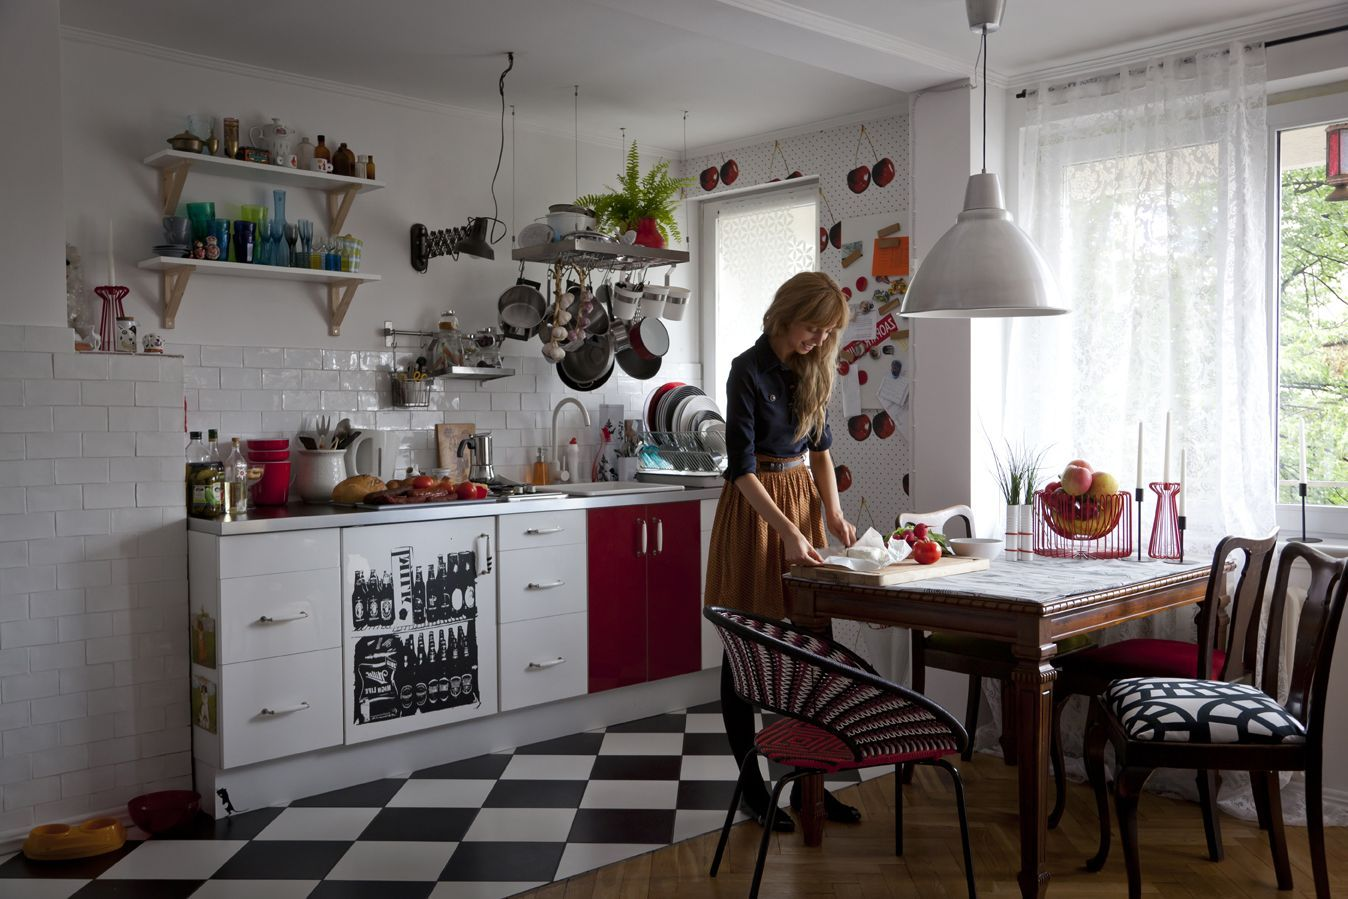 Checkerboard floor, Retro kitchens and Retro style on Pinterest